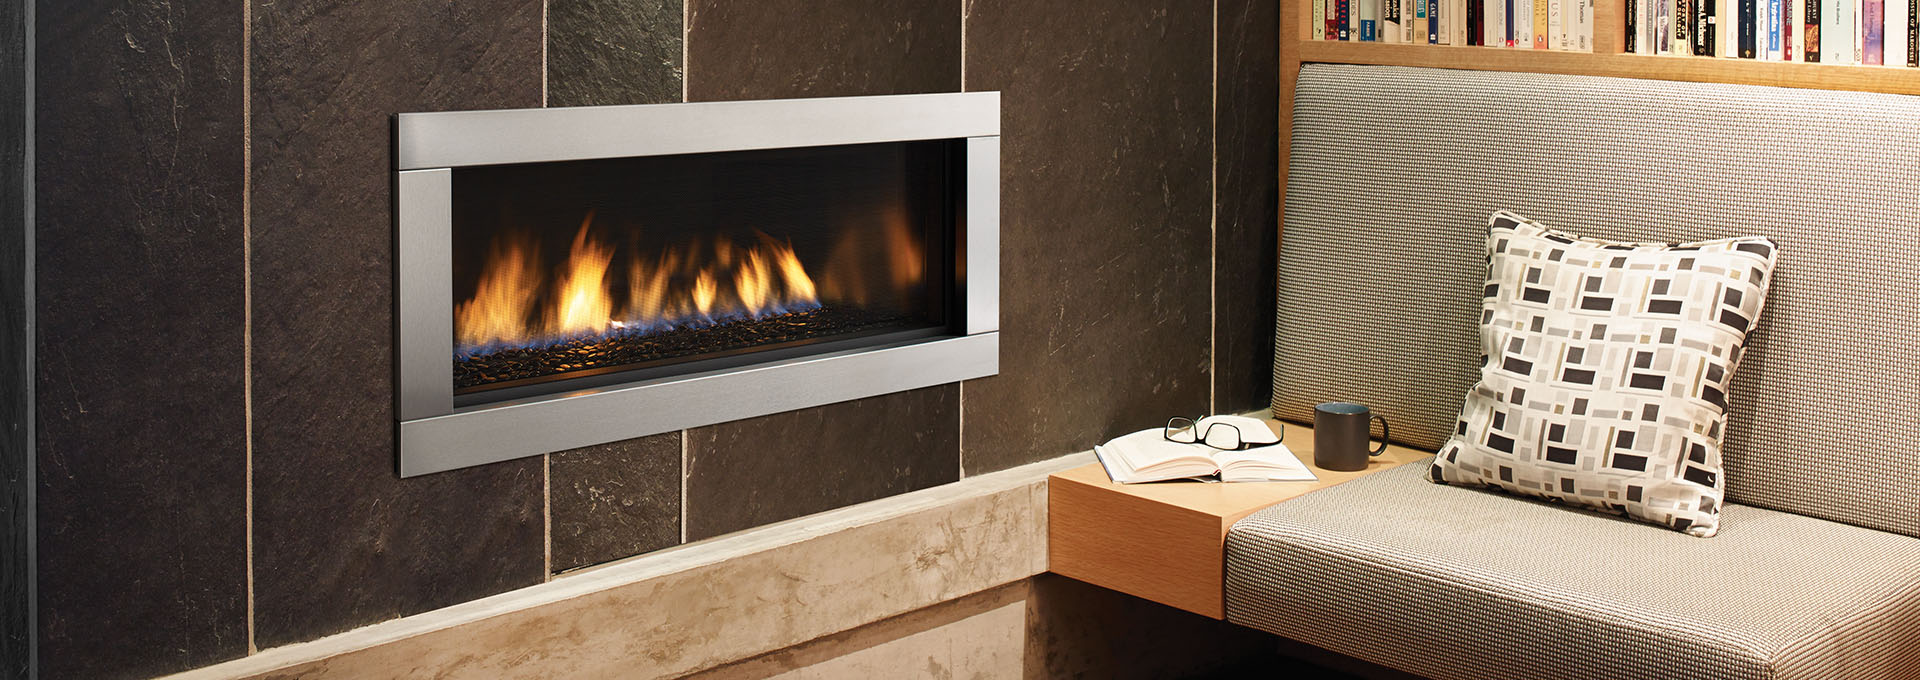 Modern Fireplace Insert Modern Contemporary Gas Fireplaces Regency Fireplace Products